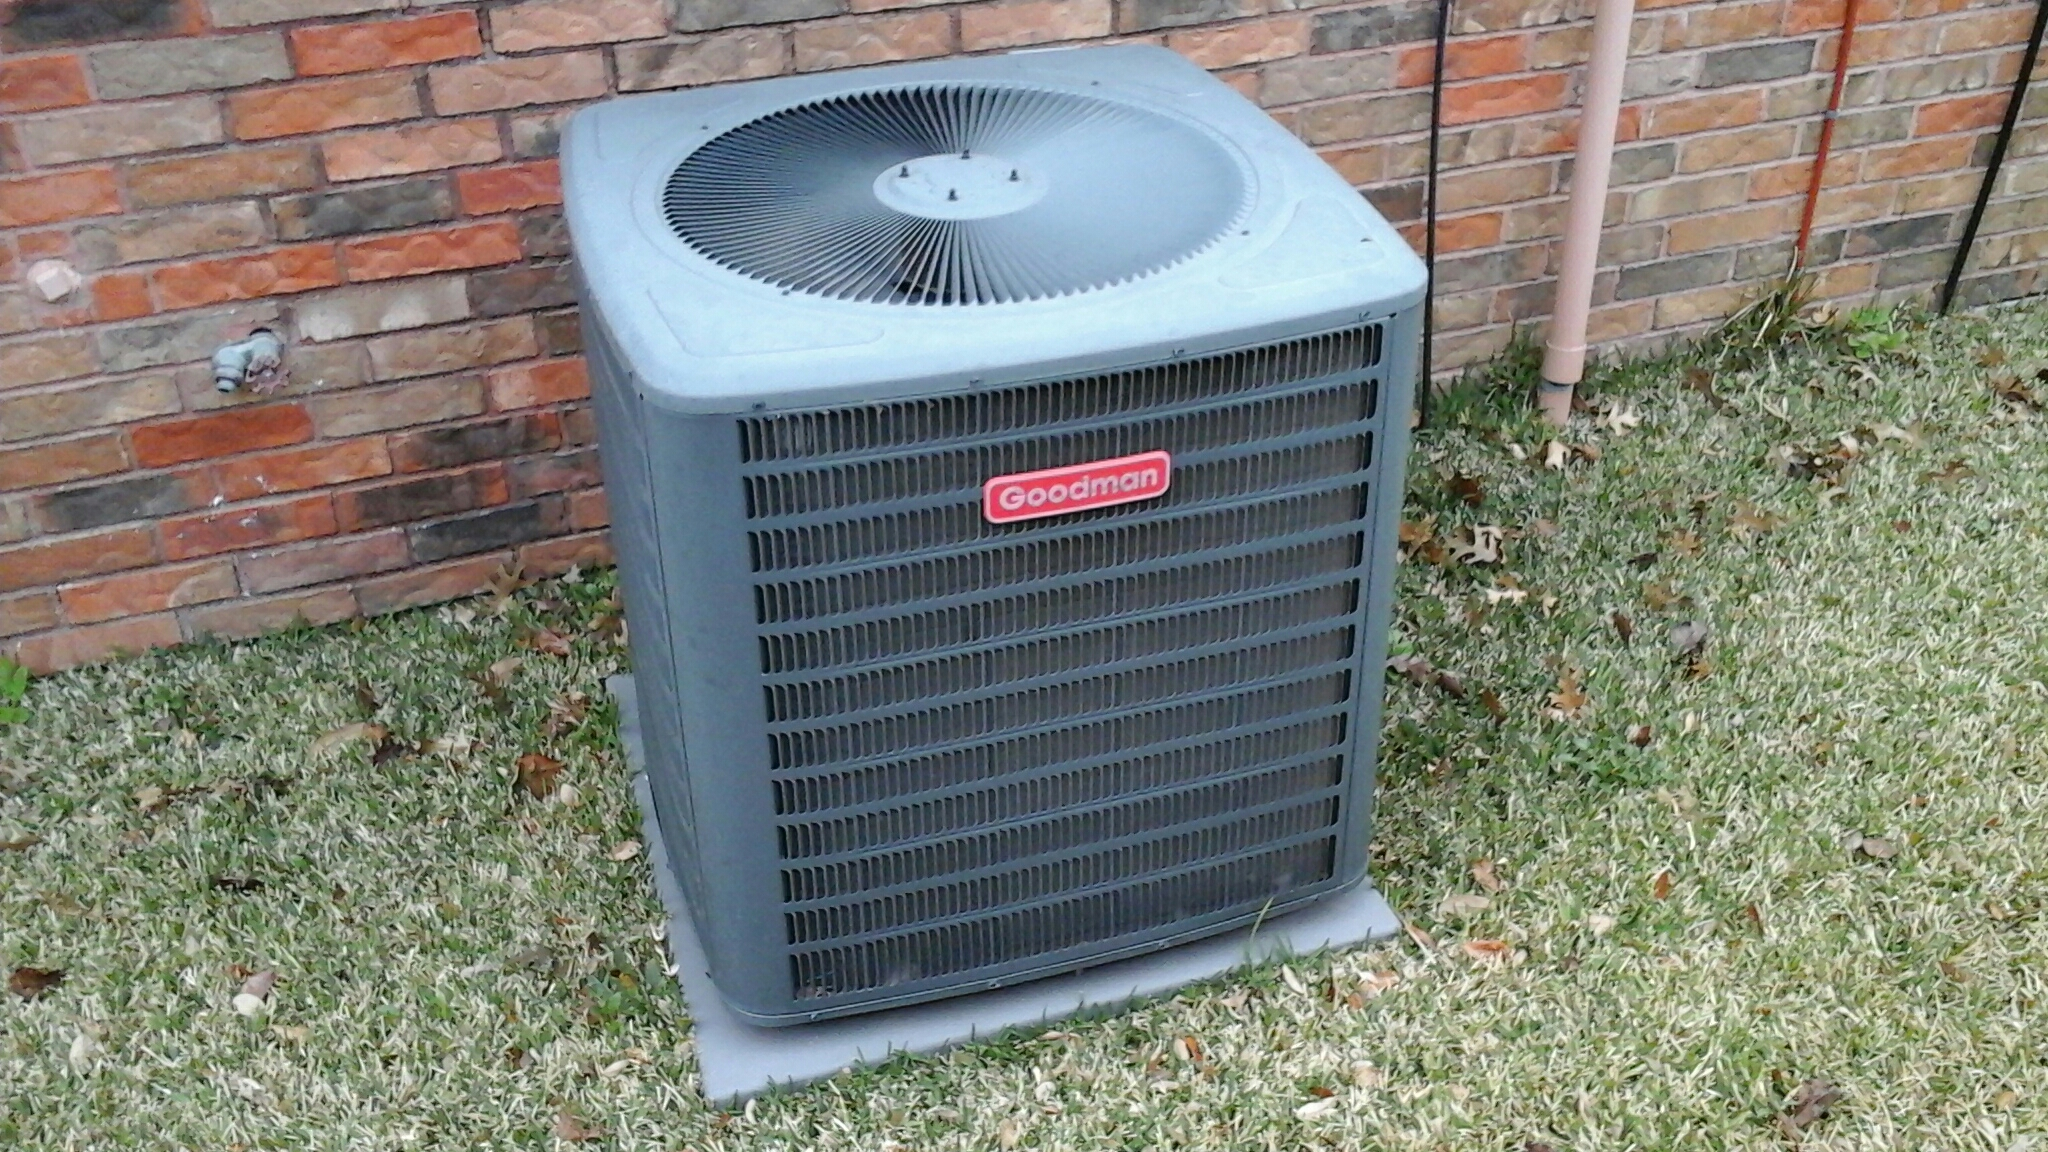 Carrollton, TX - Performed maintenance on a goodman heater and ac unit. Cleaned coils.